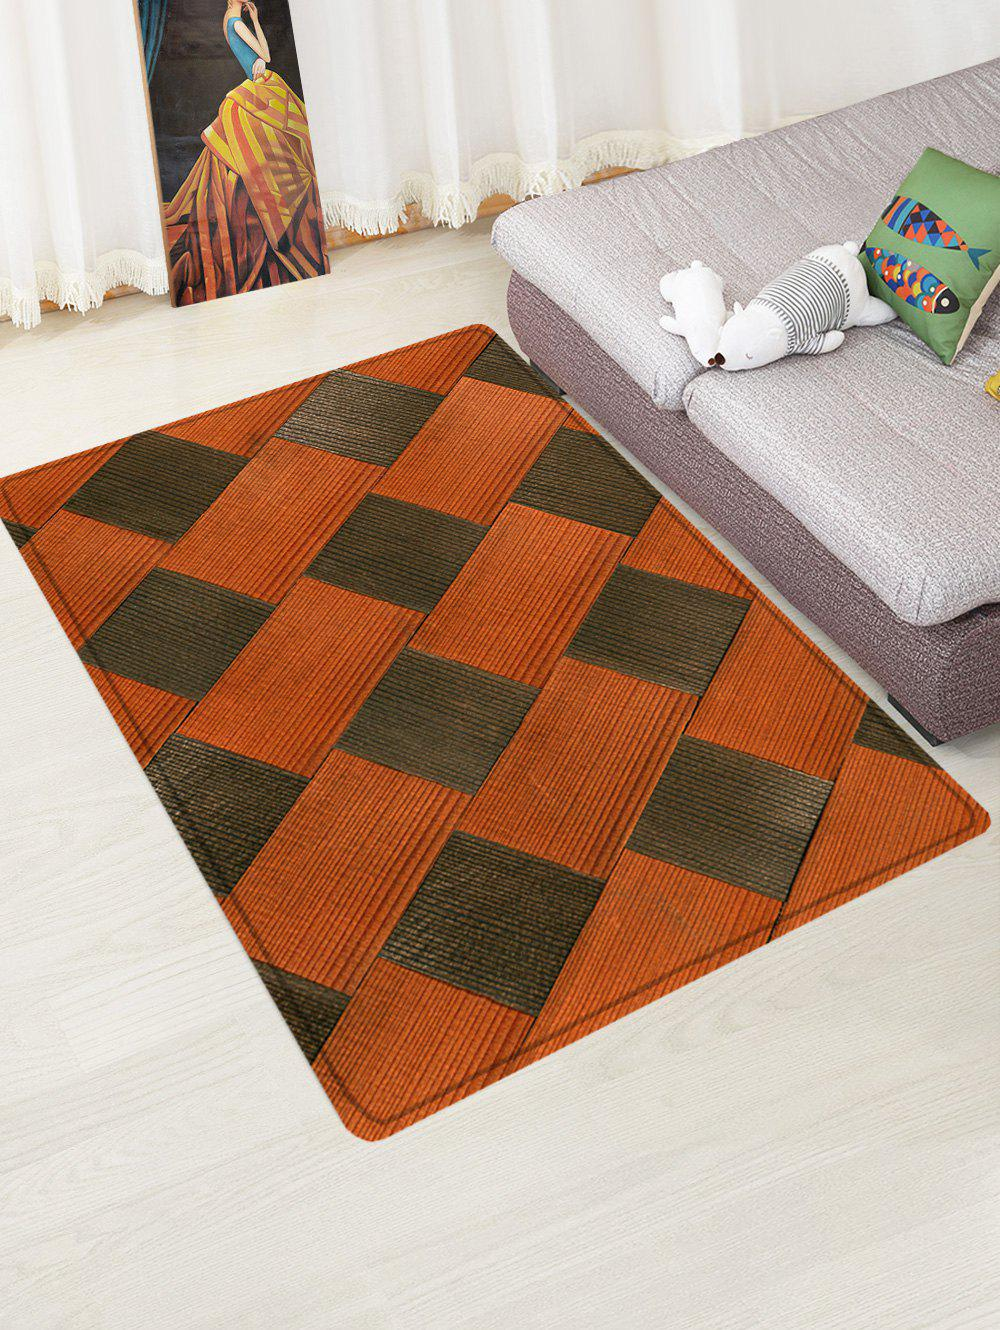 Color Block Pattern Anti-skid Floor Area Rug - COLORMIX W20 INCH * L31.5 INCH